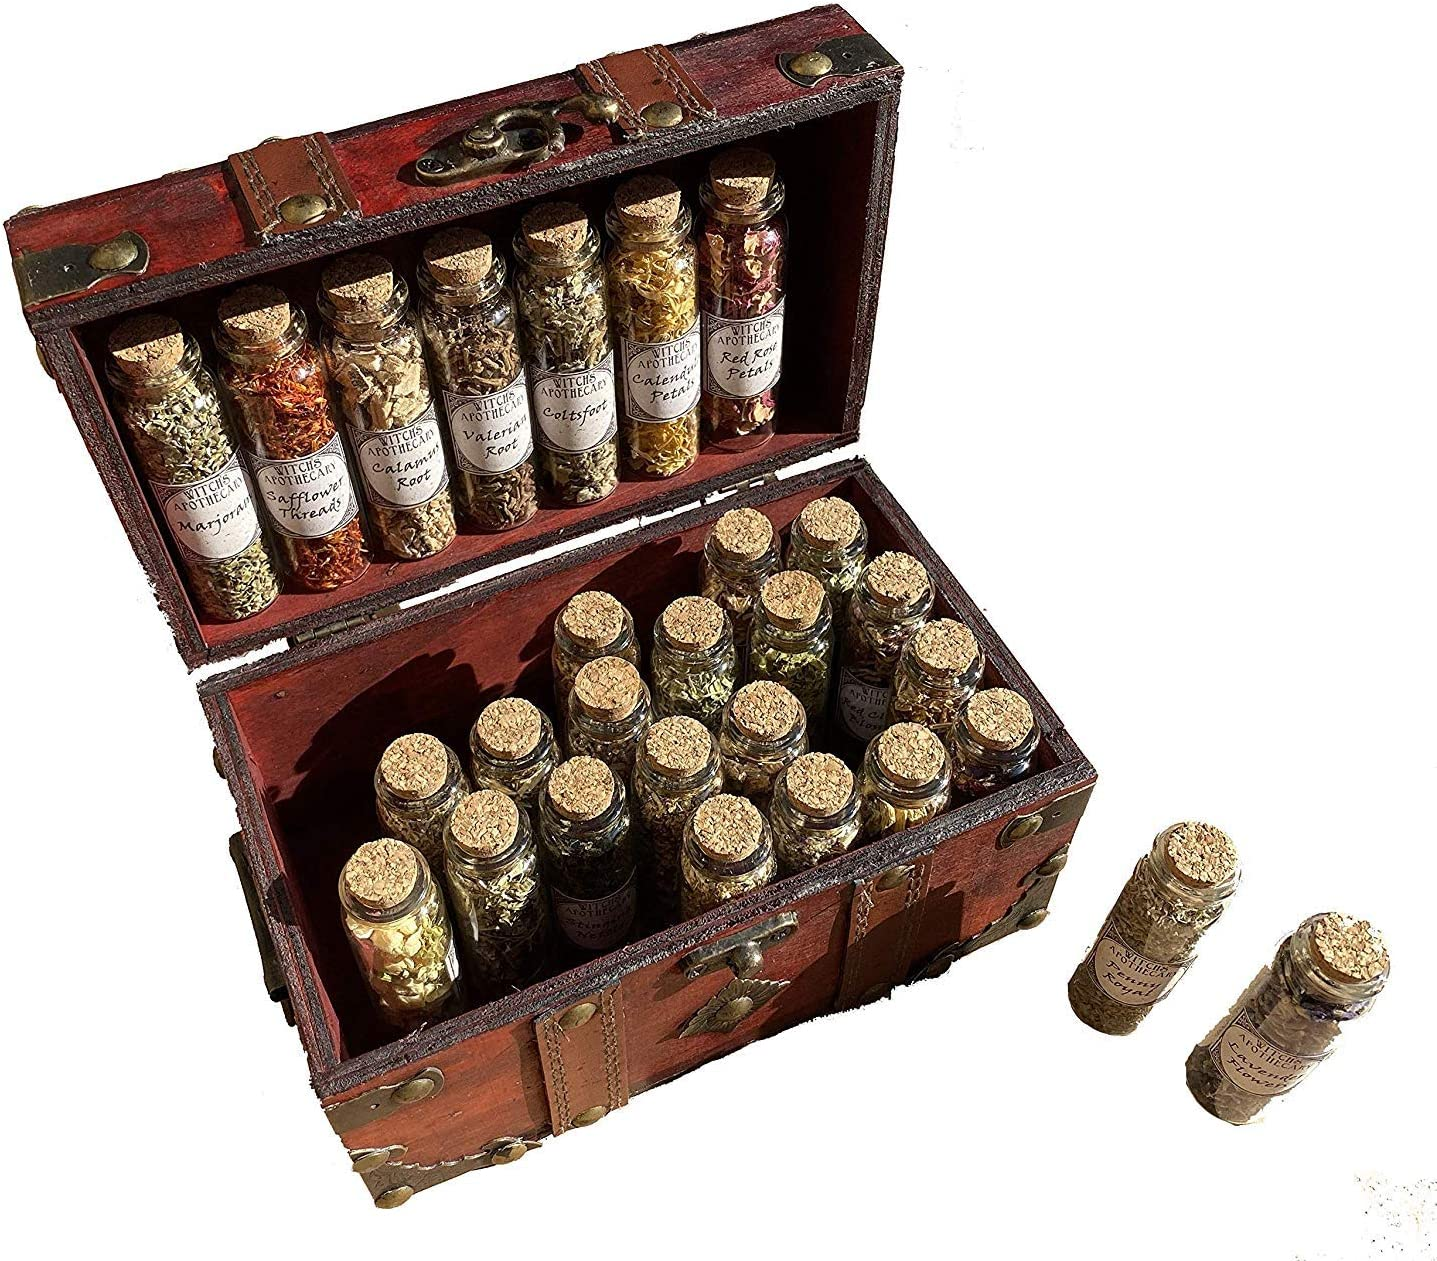 Apothecary Witchcraft Kit Glass Bottles Herbs Wiccan Popular brand in Japan Maker New the world Alta Travel